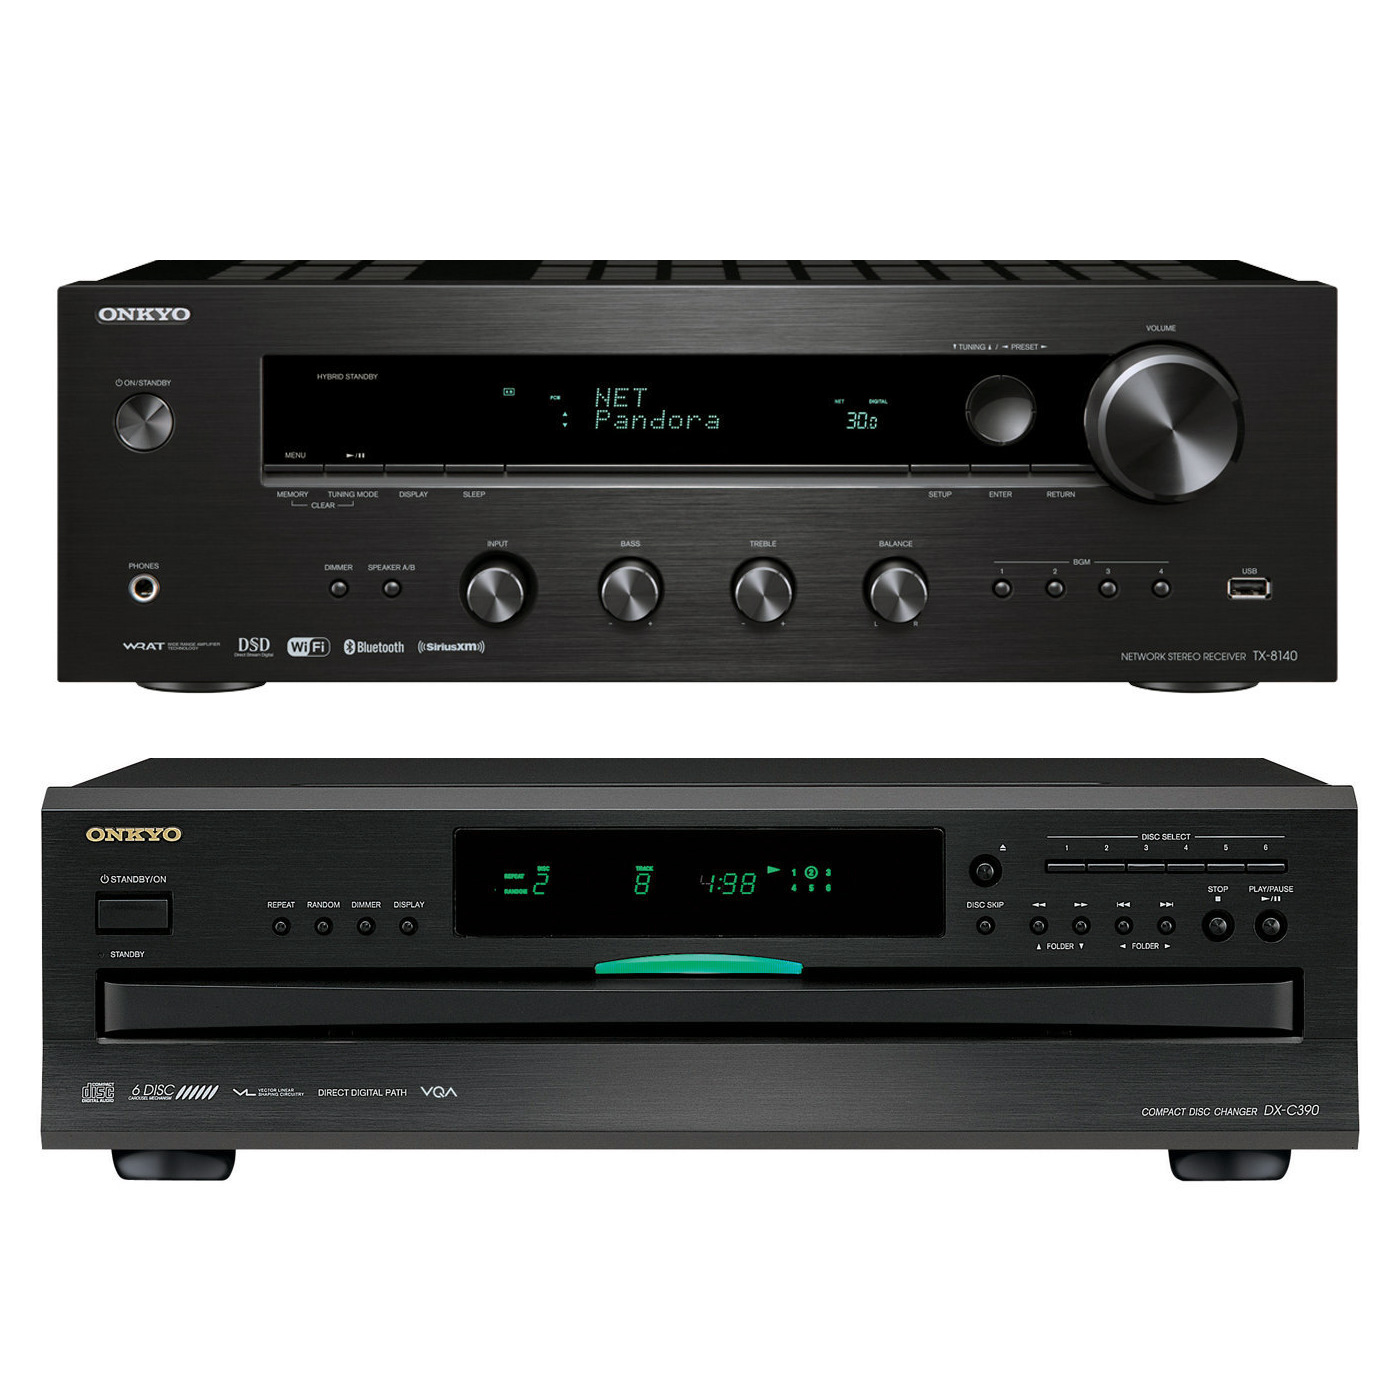 Onkyo TX-8140 Network Stereo Receiver with Built-In Wi-Fi & Bluetooth and DX-C390 6-Disc Carousel CD Player by Onkyo